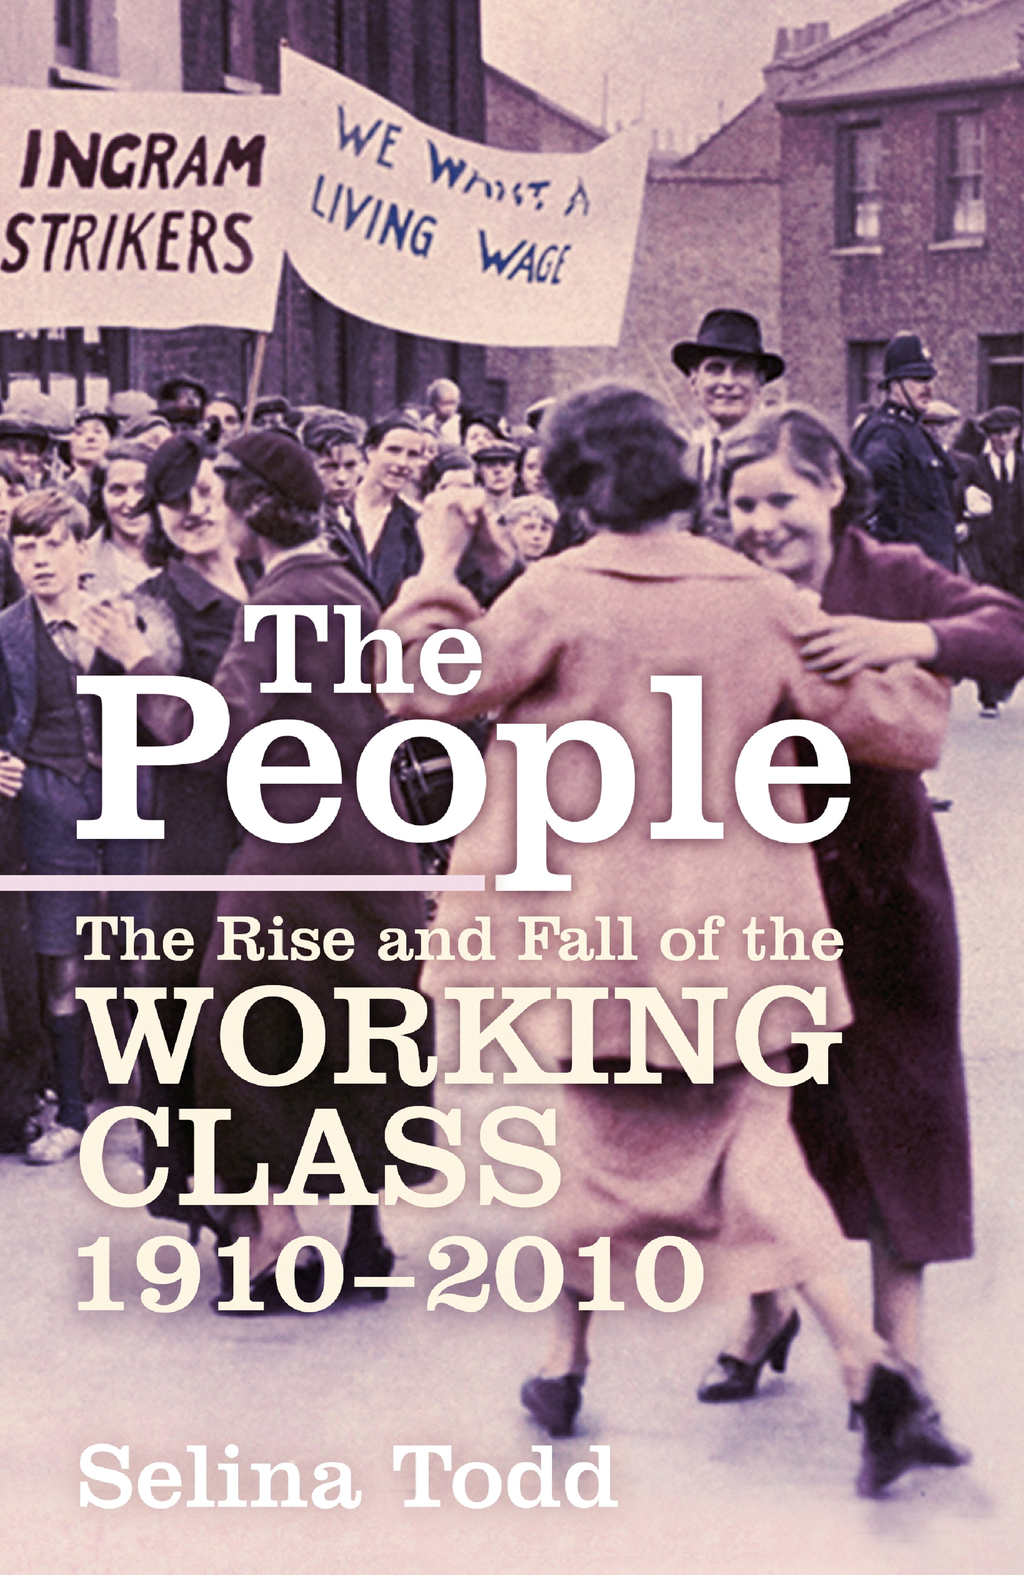 The People The Rise and Fall of the Working Class,  1910-2010